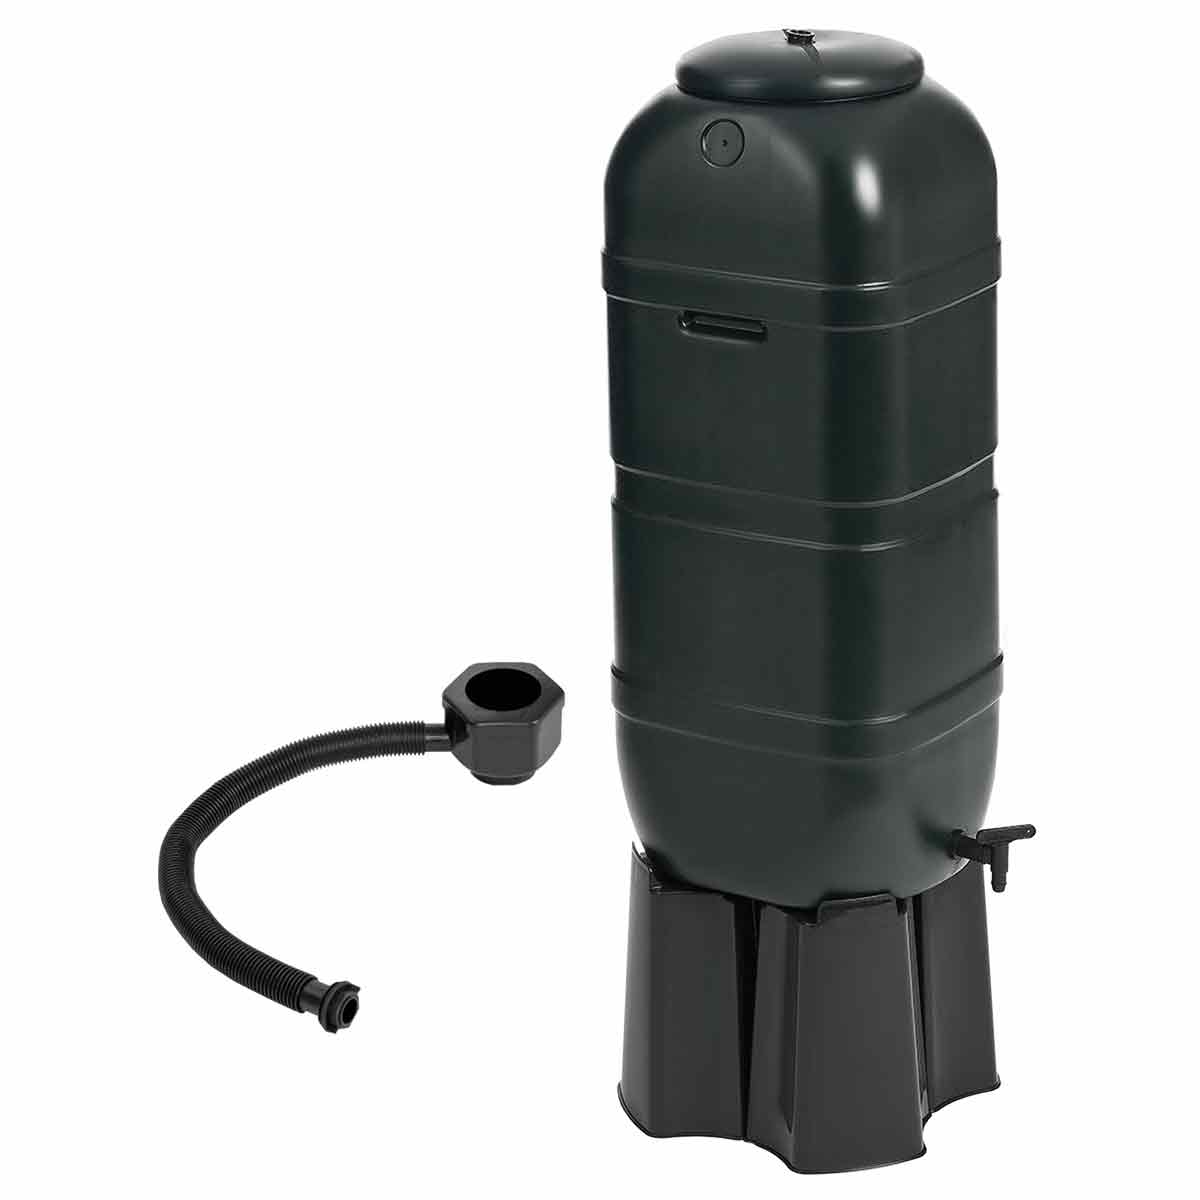 Charles Bentley 100L Slimline Water Butt Set Including Tap with Stand and Filler Kit